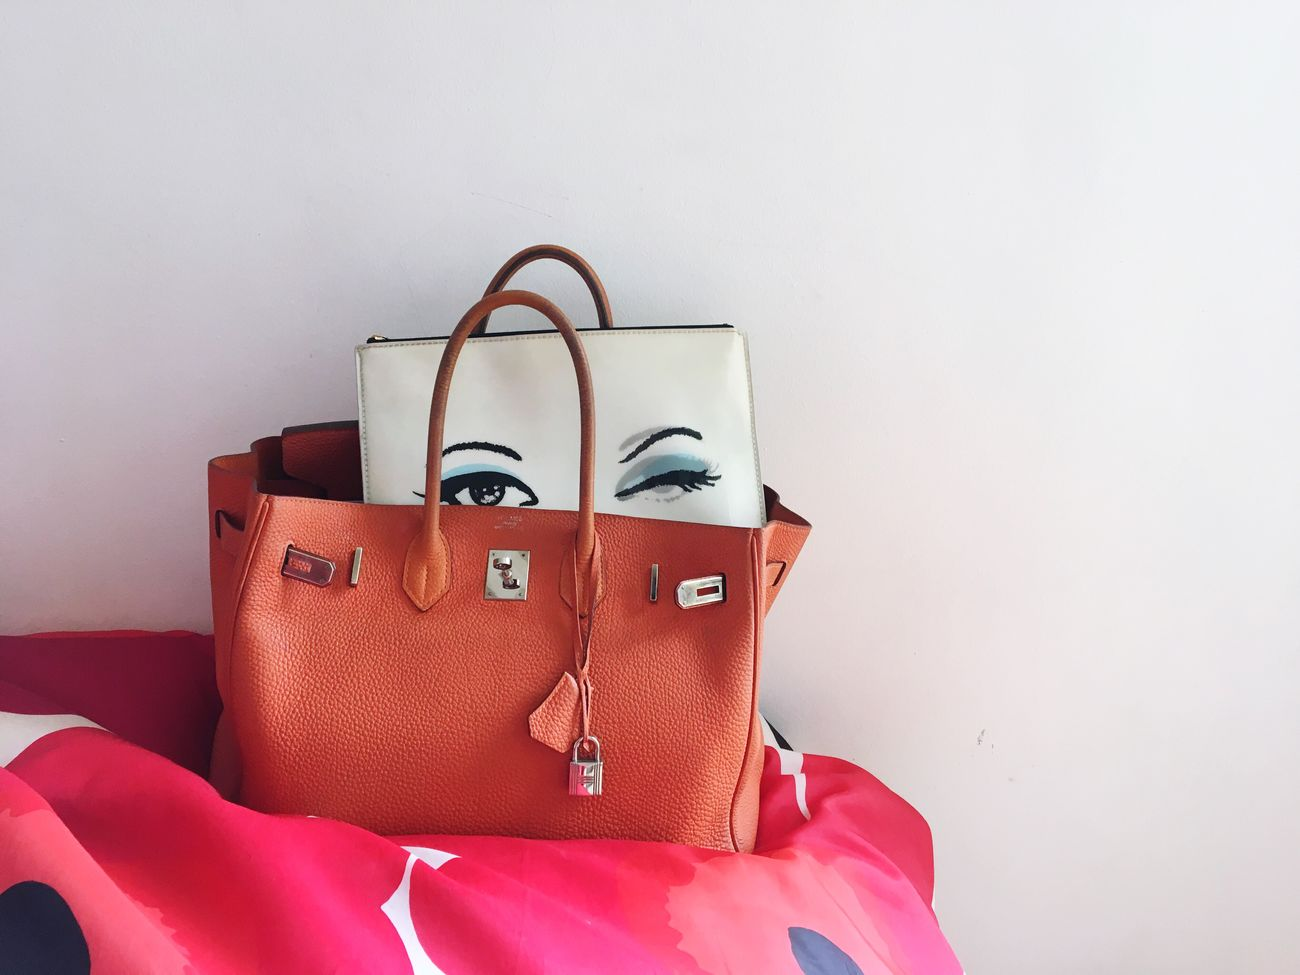 Peeping at You! Quick, peep back! Happy Sunday everyone! Missing you all! My Unique Style Eyes Wink Lenticular Marimekko Hermes Bag Orange